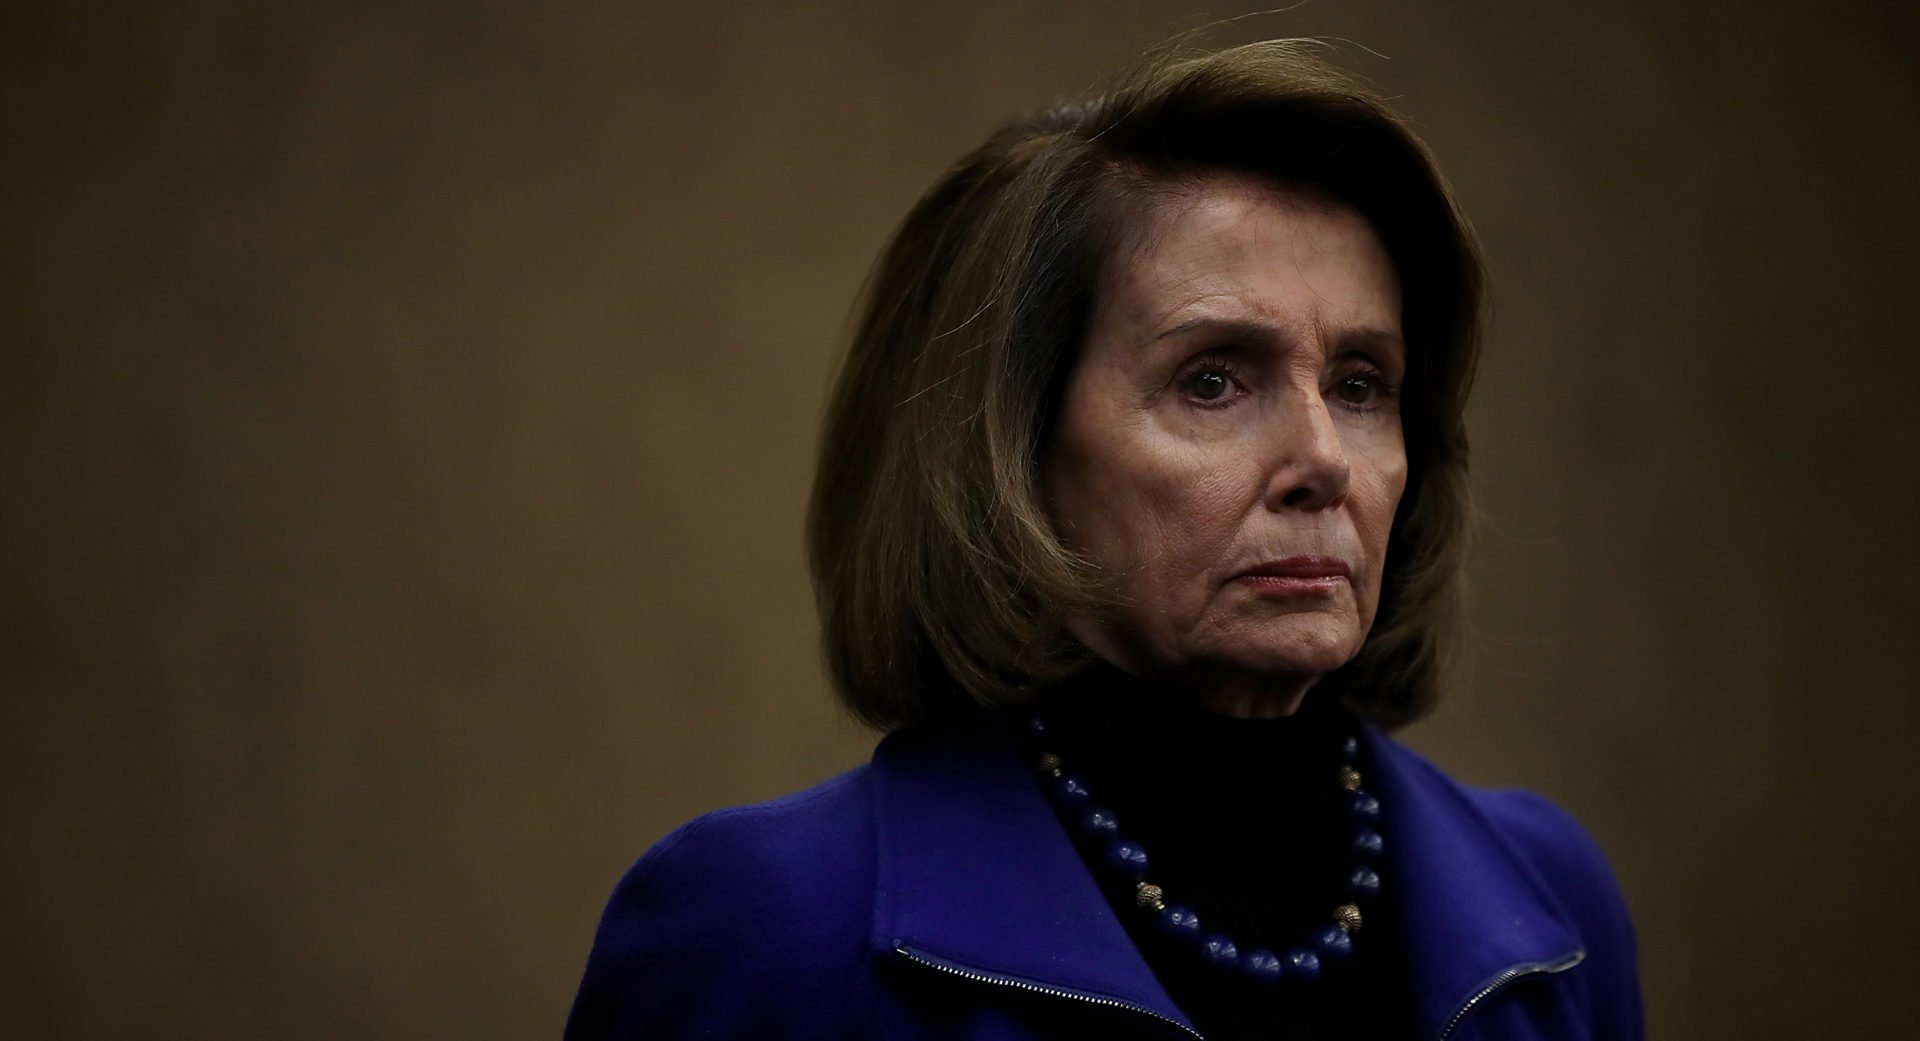 Critics bash House Minority Leader Nancy Pelosis bait and switch fundraising email